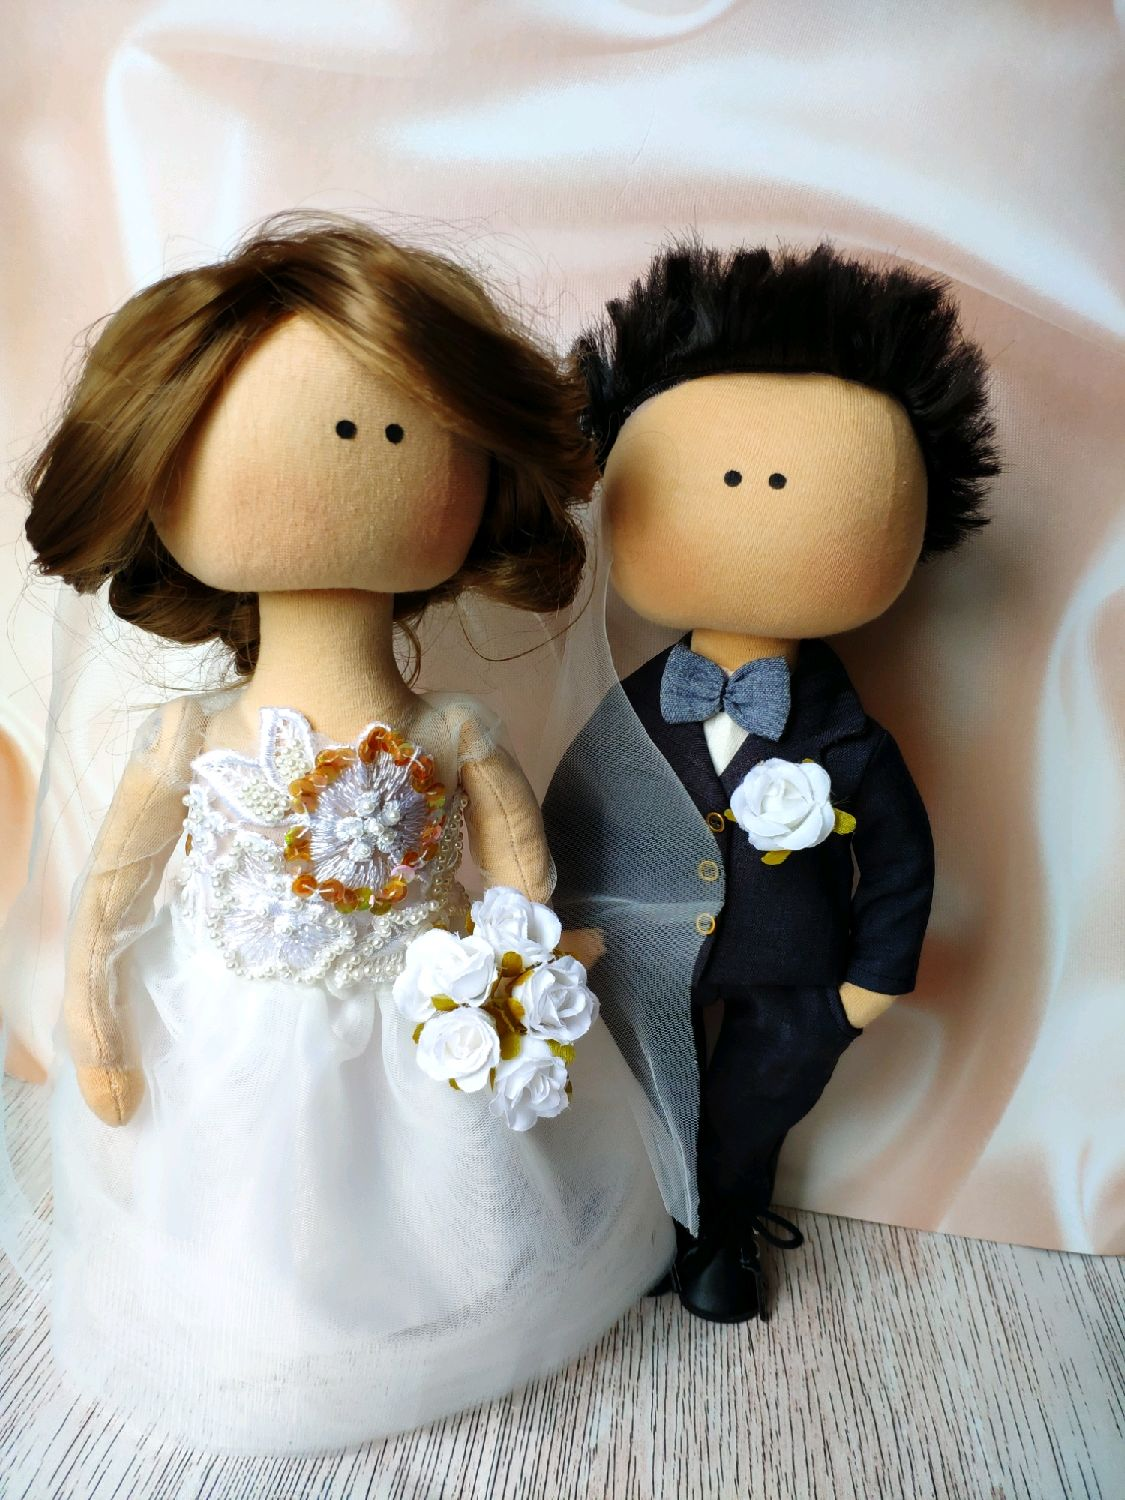 Happy married dolls like gift for wedding, Dolls, Moscow,  Фото №1